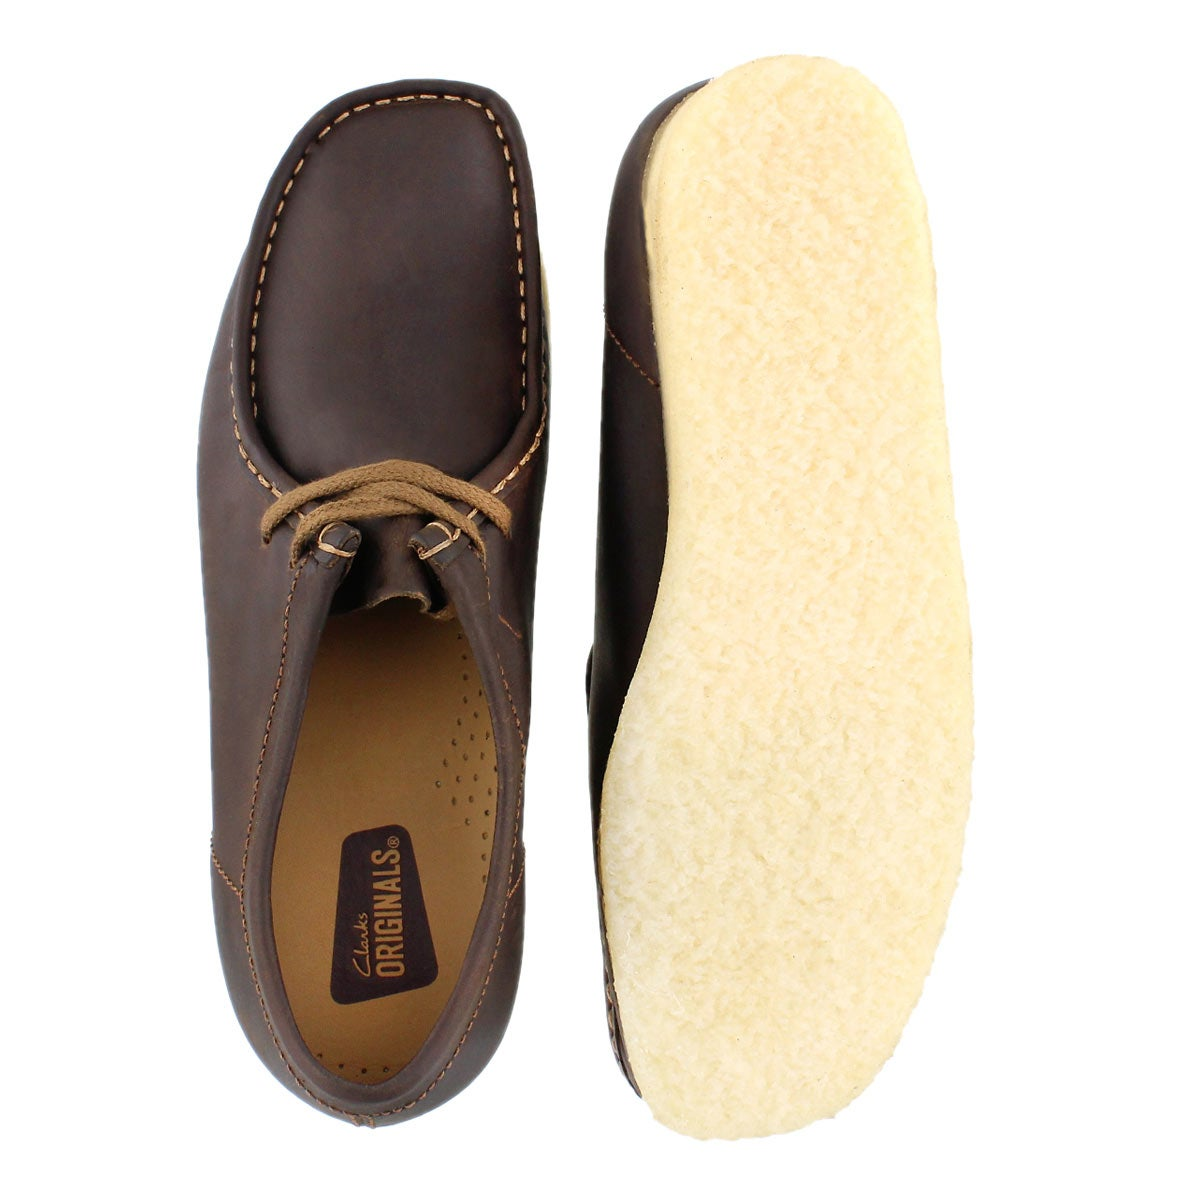 Mns Wallabee beeswax leather casual shoe